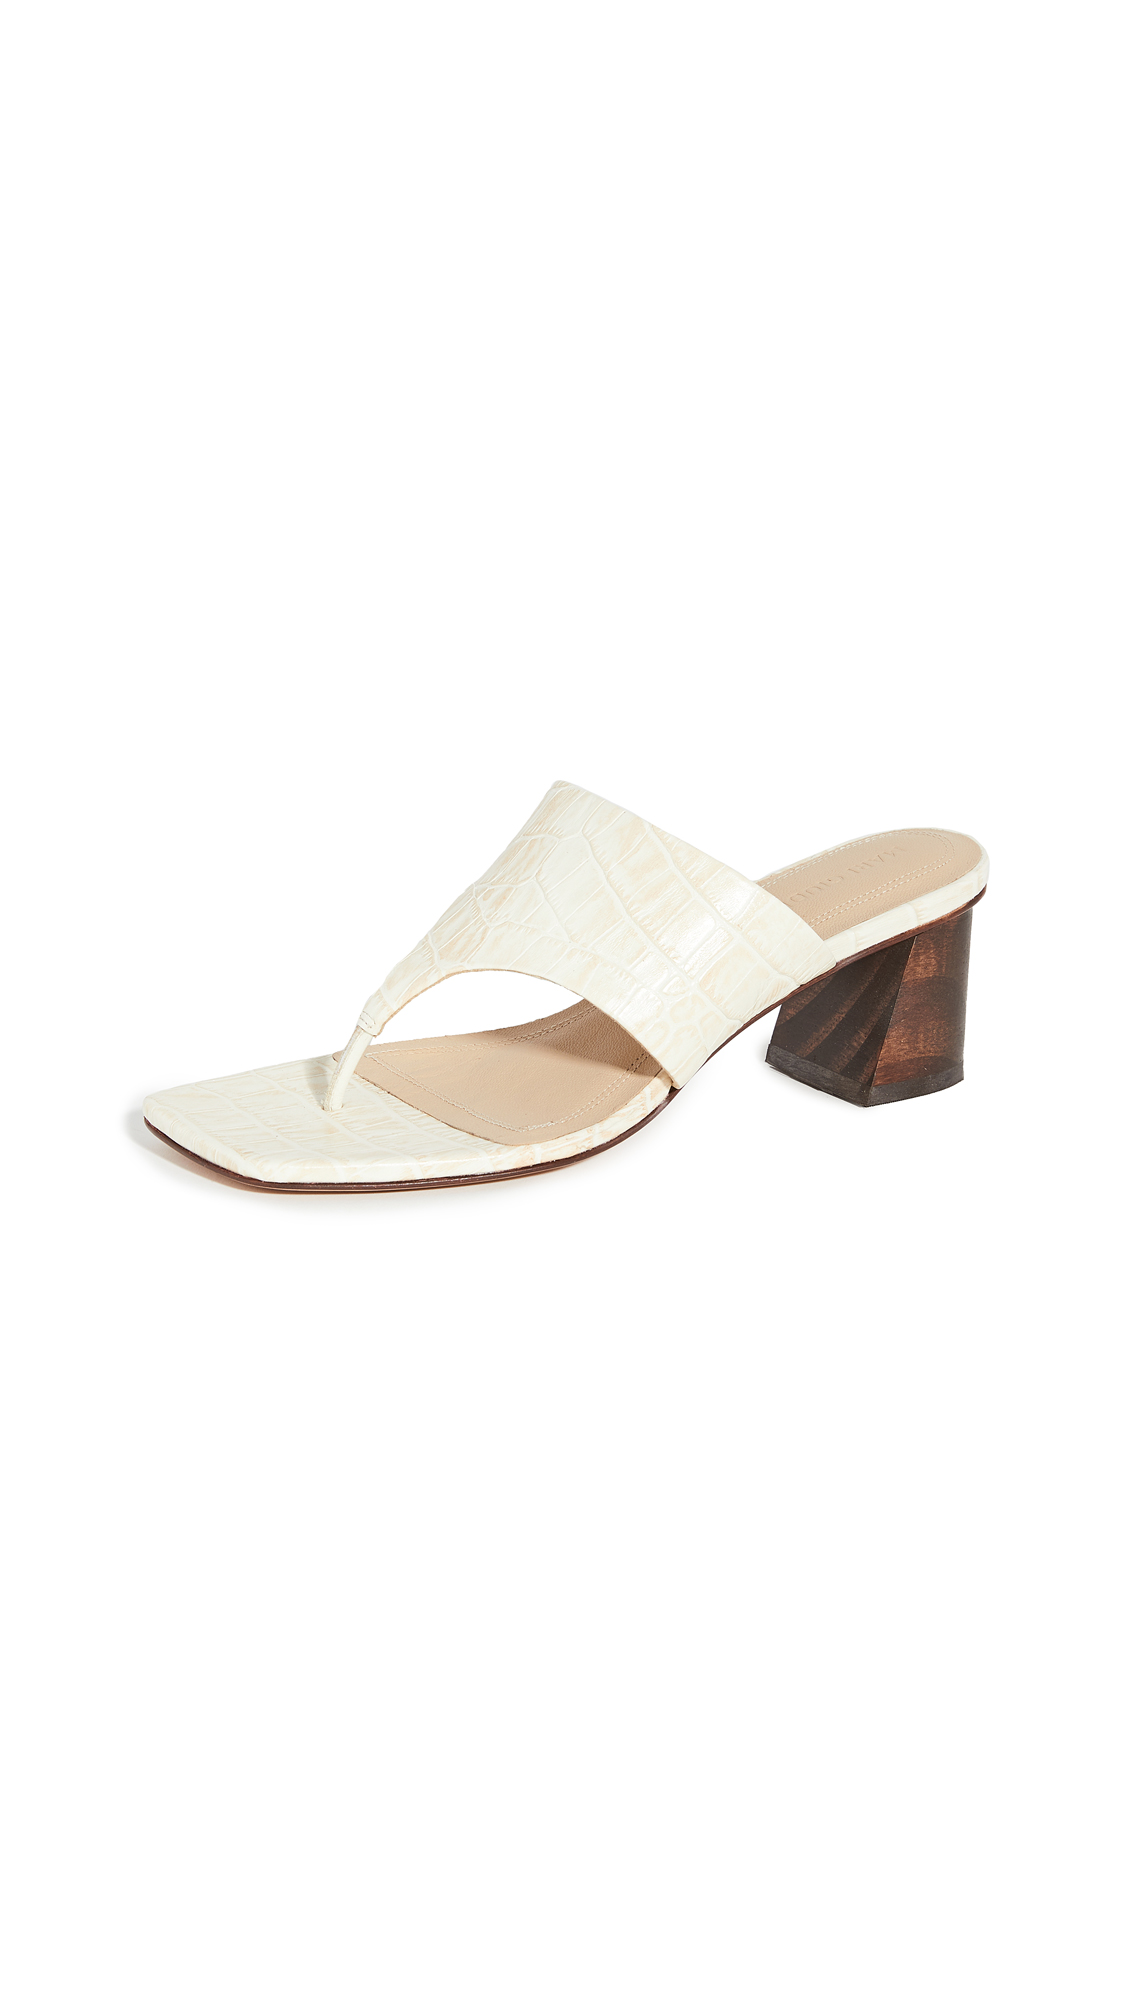 Mari Giudicelli Copa Sandals - 30% Off Sale